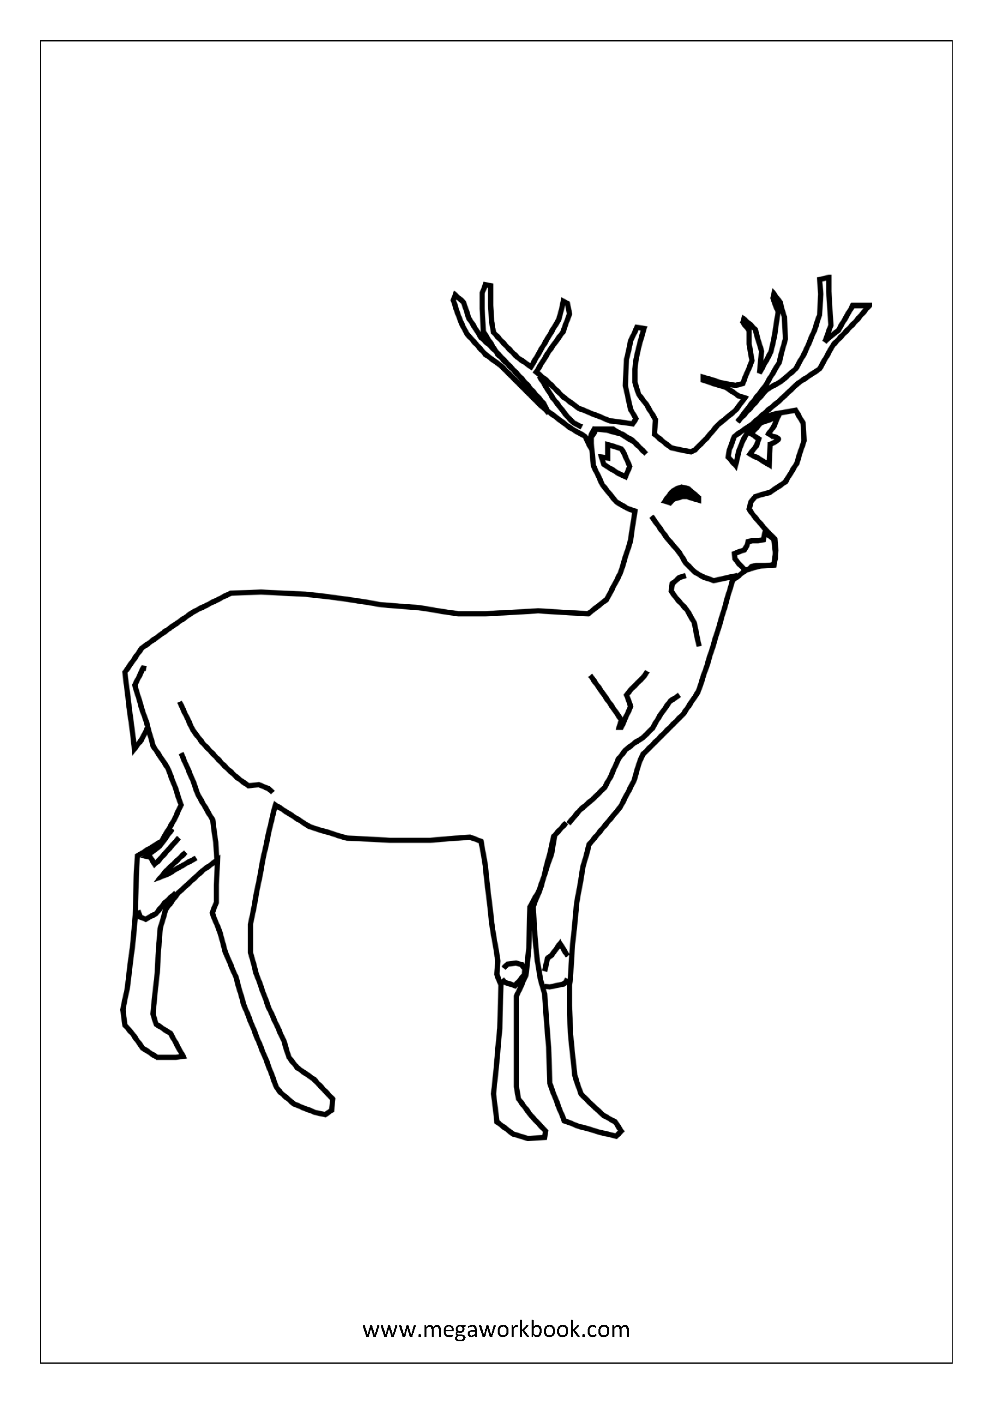 Free Coloring Sheets Animals Water Creaturs Insects